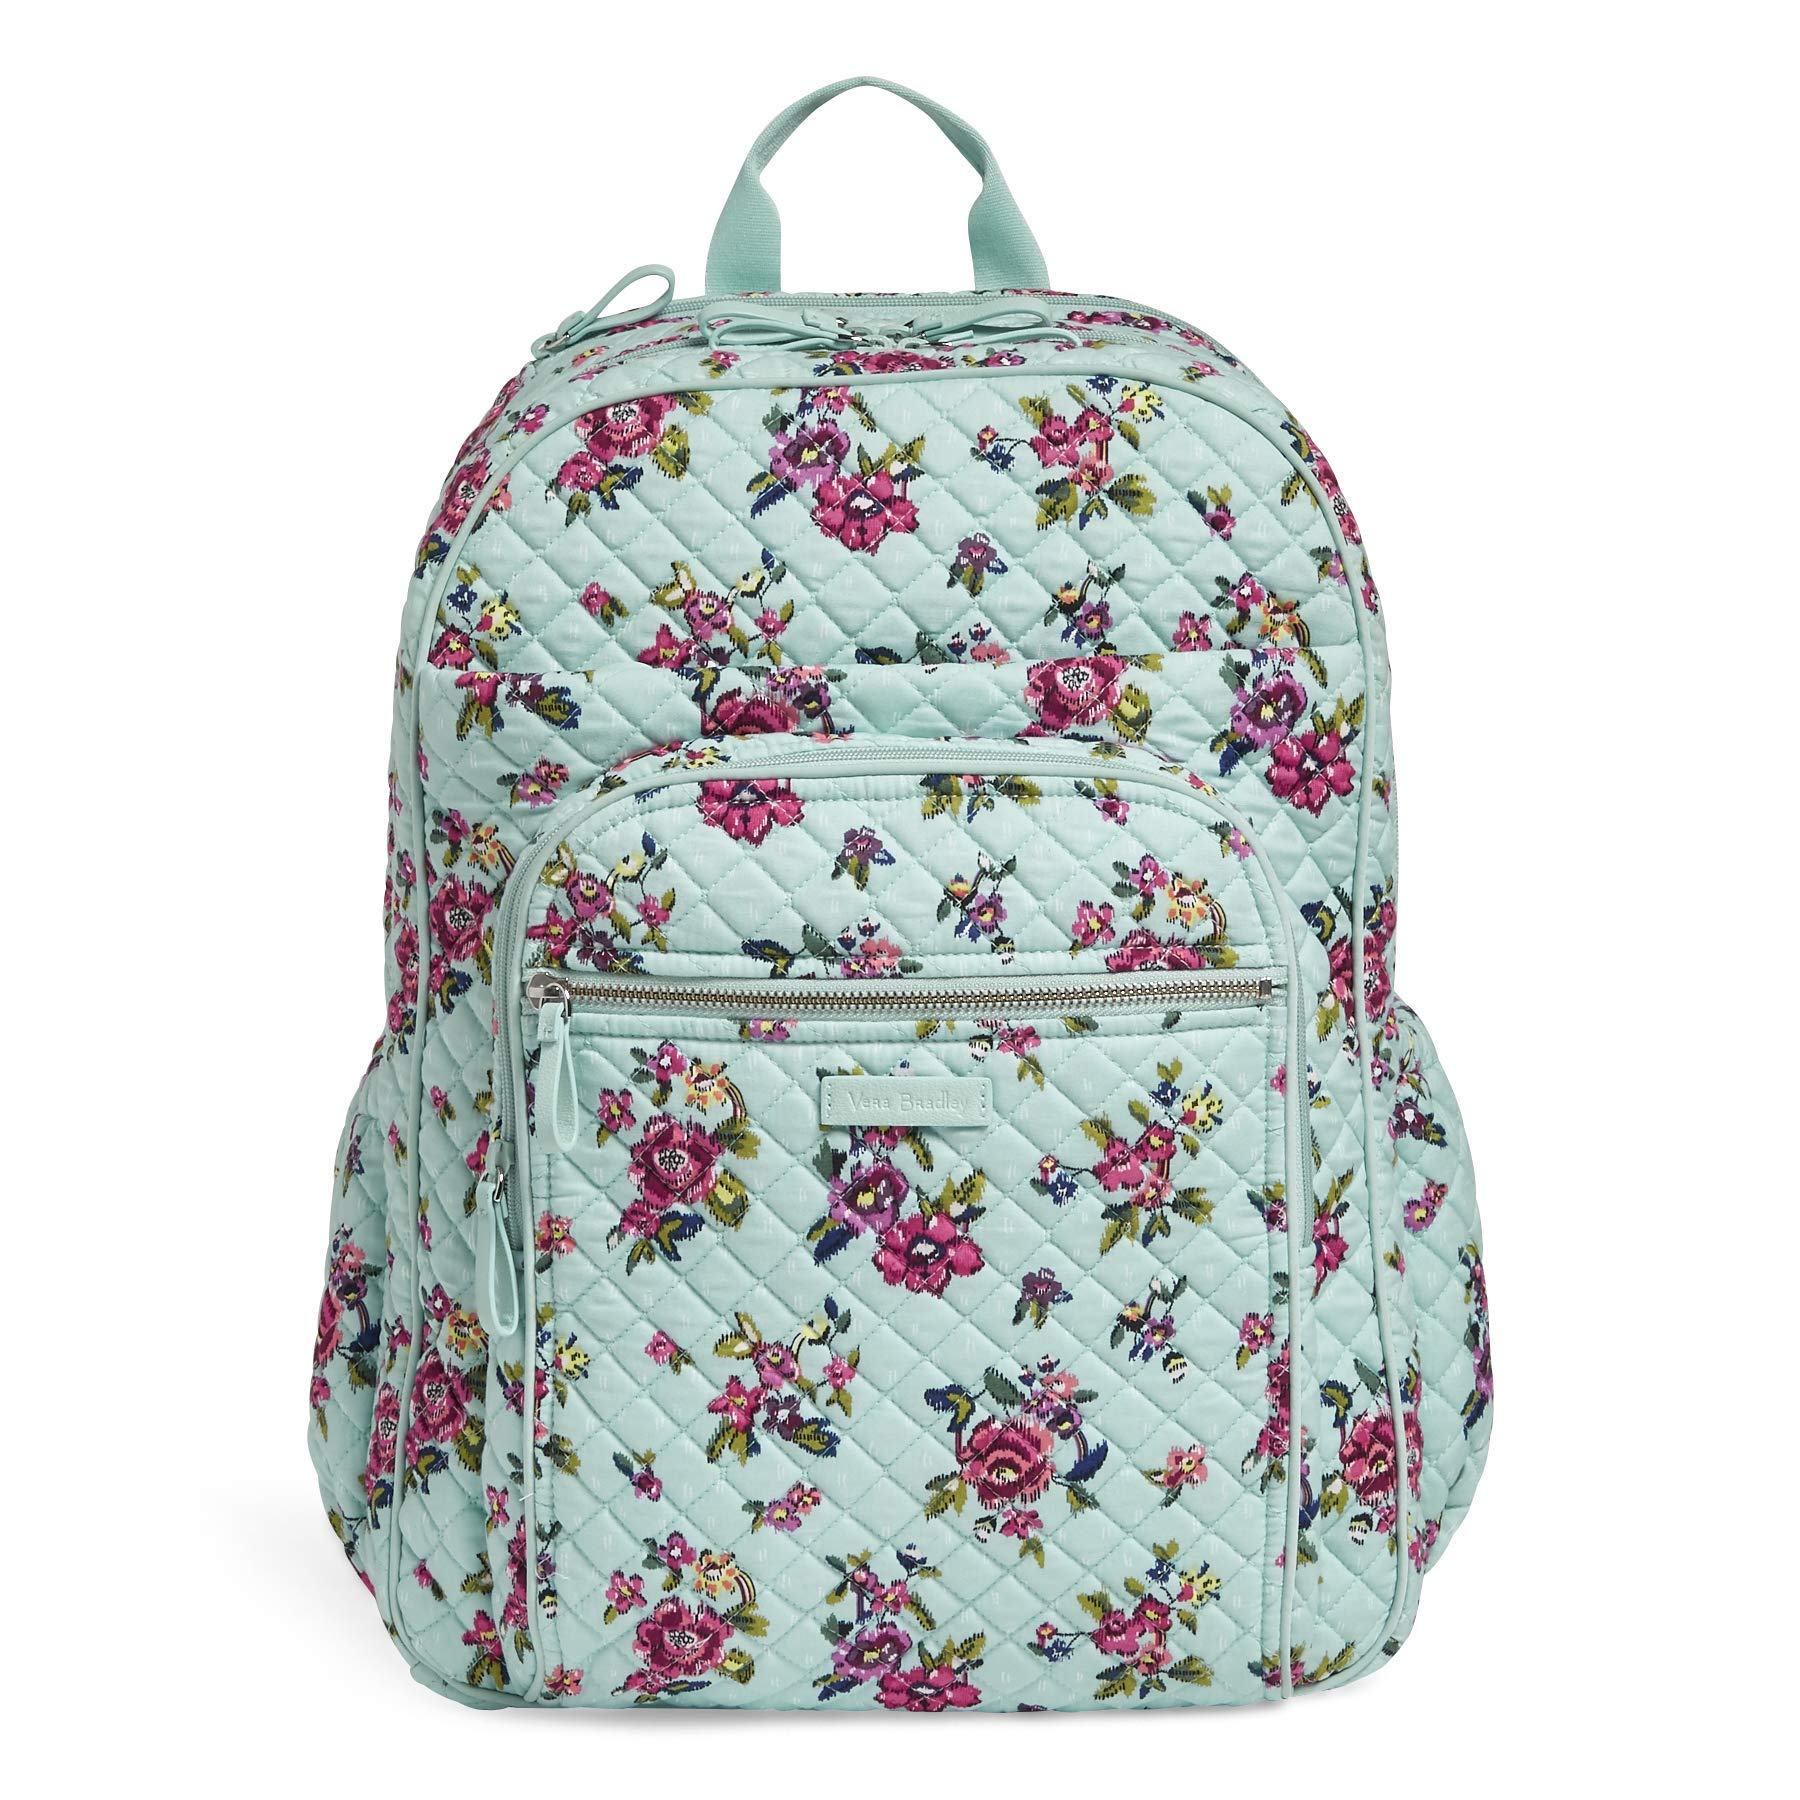 Vera Bradley Iconic XL Campus Backpack, Signature Cotton, Water Bouquet